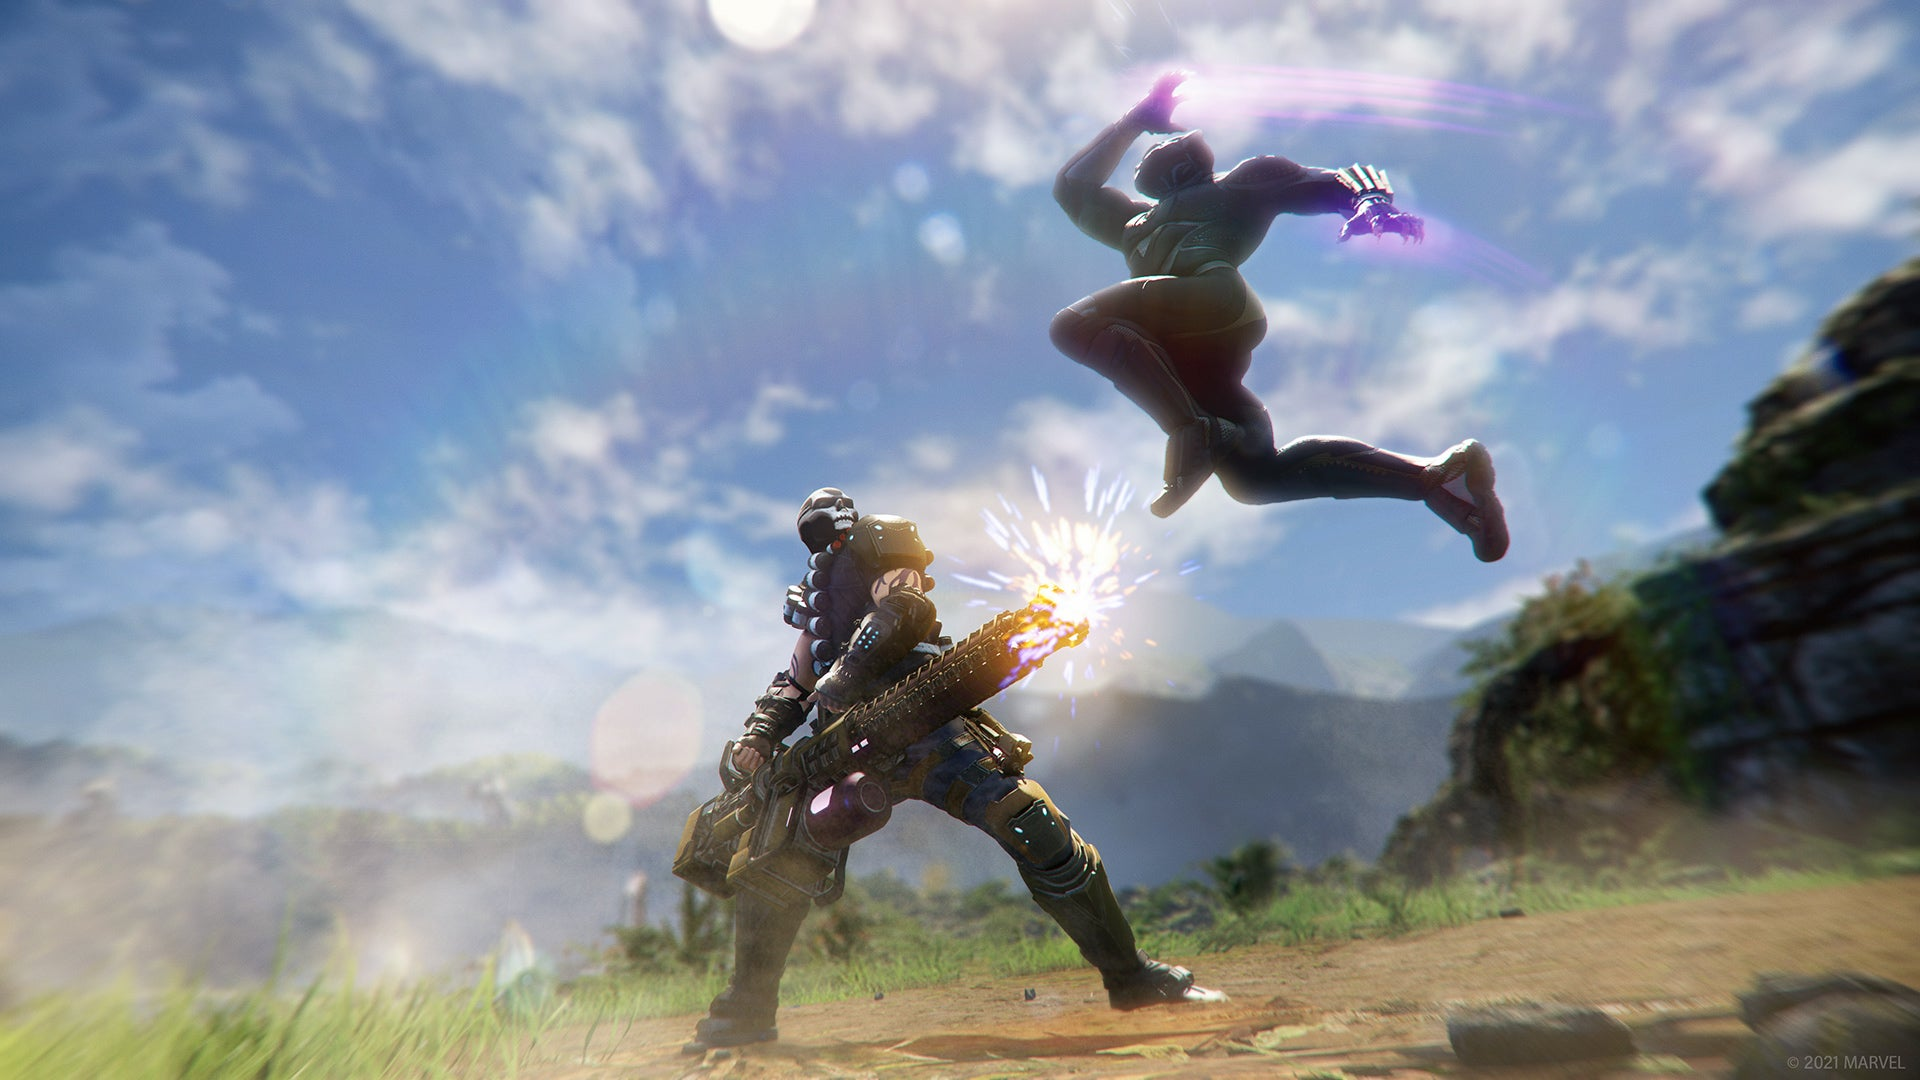 A screenshot showing Black Panther locked in battle with Klaw's head lieutenant, Crossbones. Crossbones uses two hands to wield a giant Gatling gun, which he's firing at Black Panther. Black Panther, meanwhile, is leaping above the spray of bullets, kinetic energy built up in his palms as he prepares to pounce down on his foe.